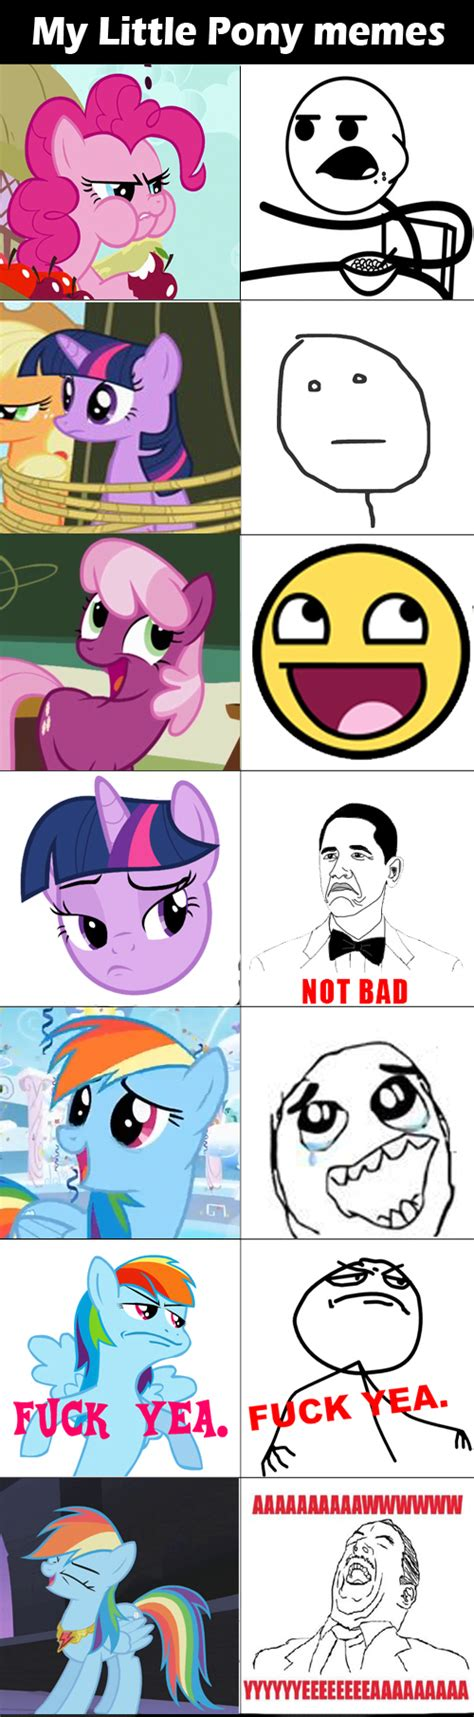 Memes My Little Pony - my little pony memes by dashiedash on deviantart